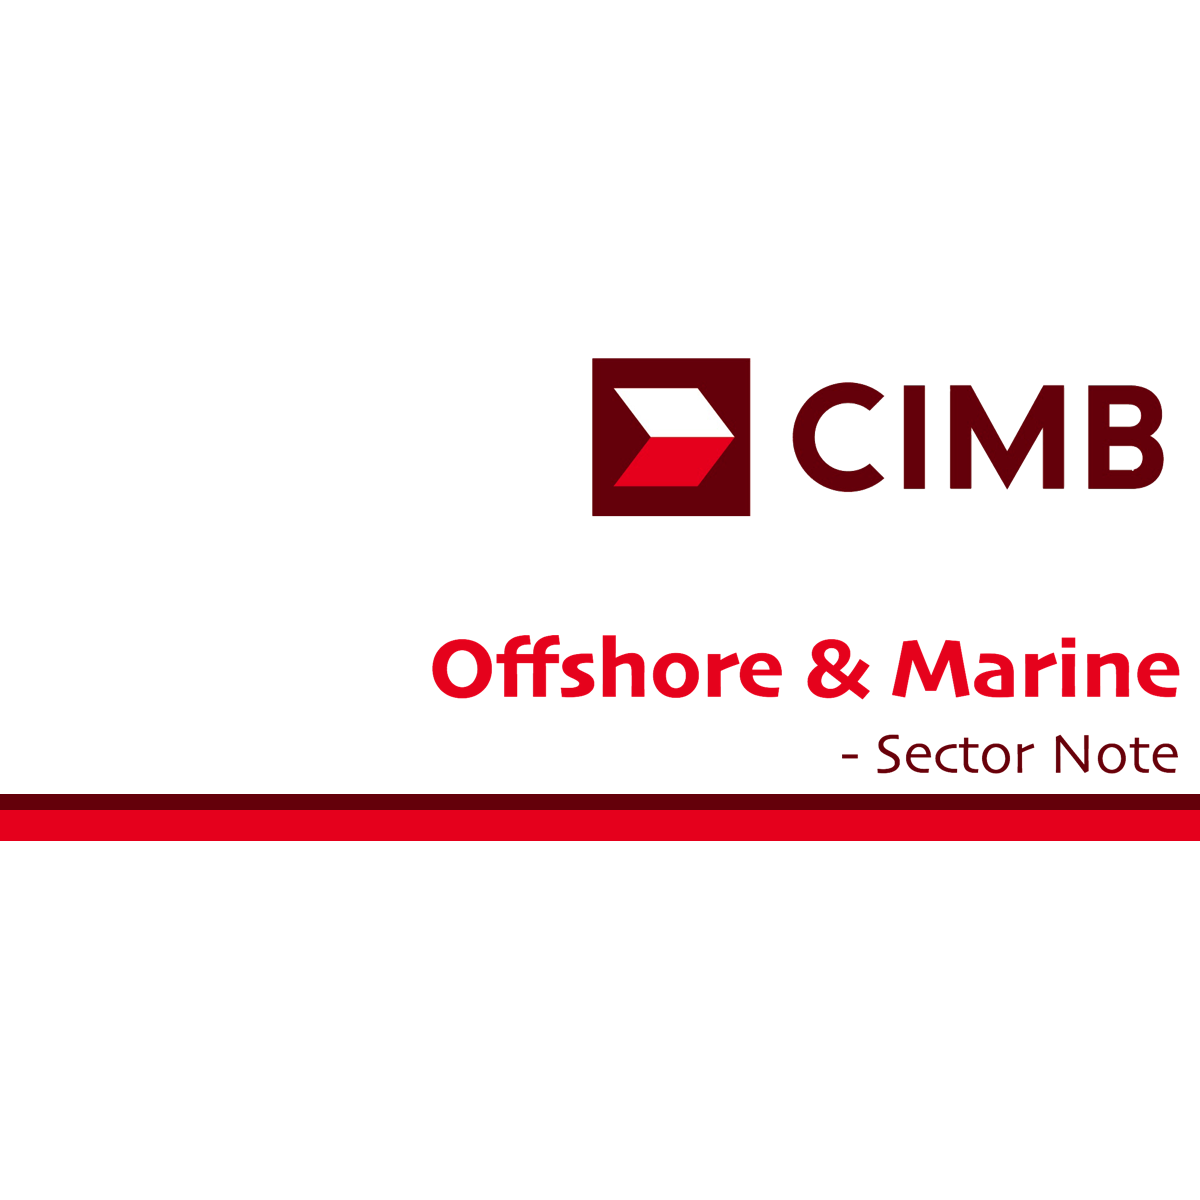 Offshore & Marine - CIMB Research 2018-04-11: 1Q18 Preview ~ Better Qoq But O&M Margin Still Weak